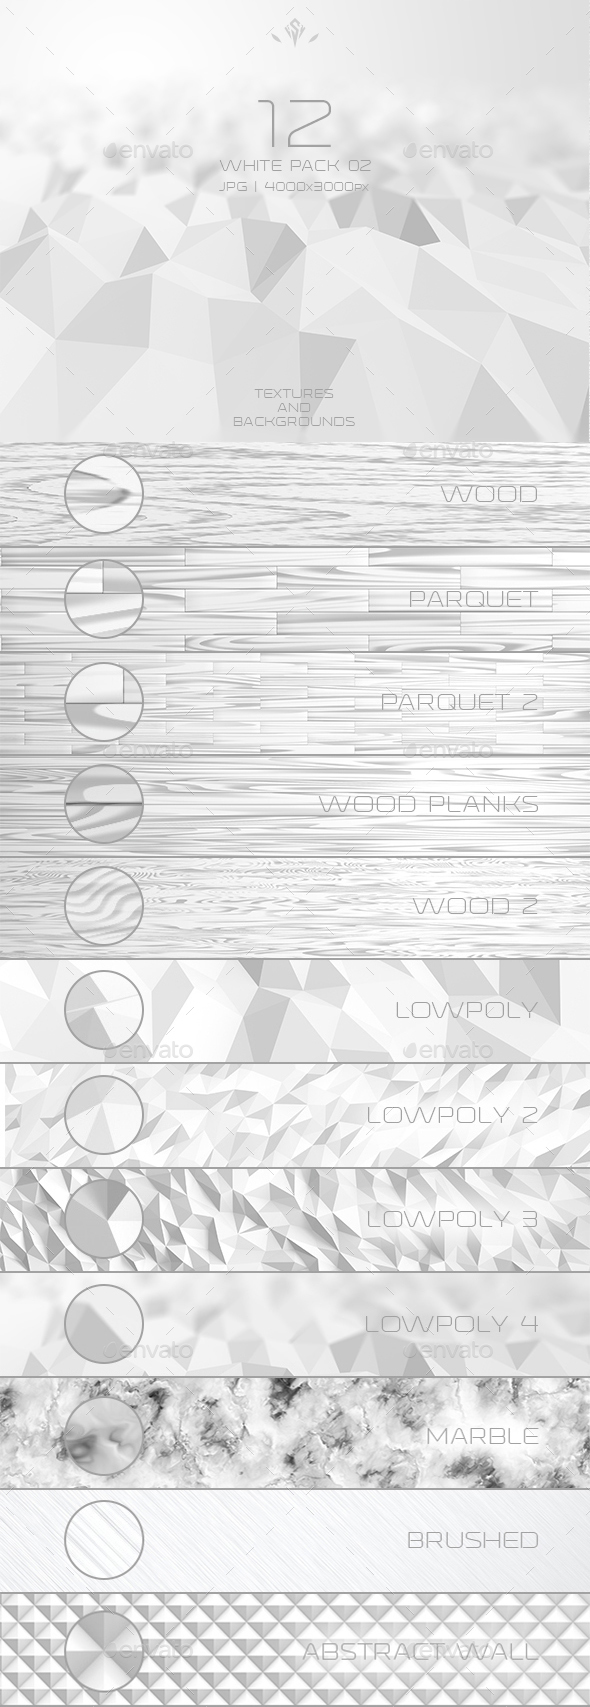 White Pack 02 12 Textures and Backgrounds - Abstract Backgrounds